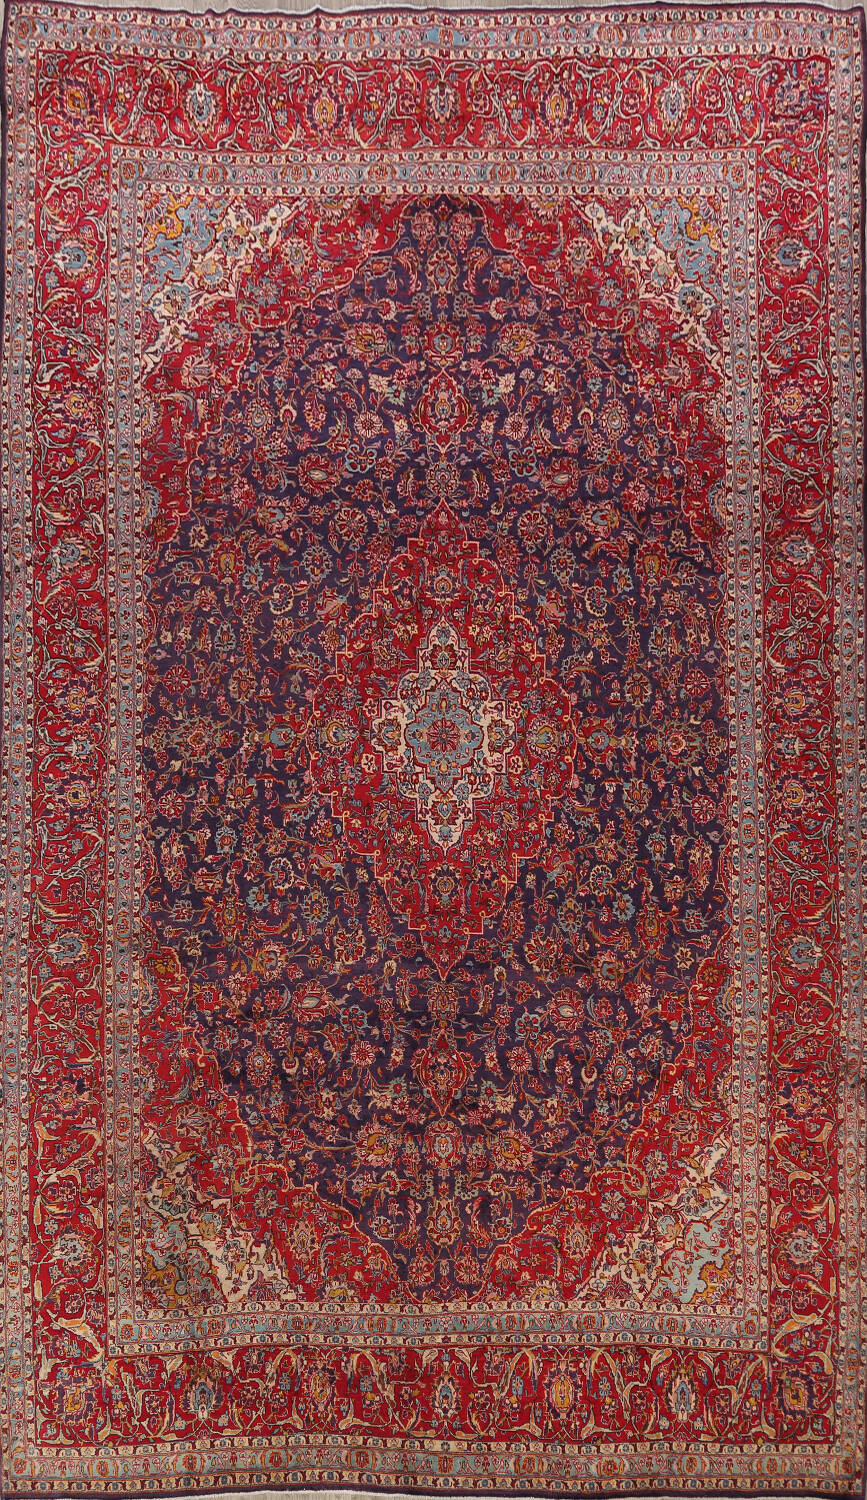 10x15 Room: Large Traditional Kashan Persian Area Rug 10x15